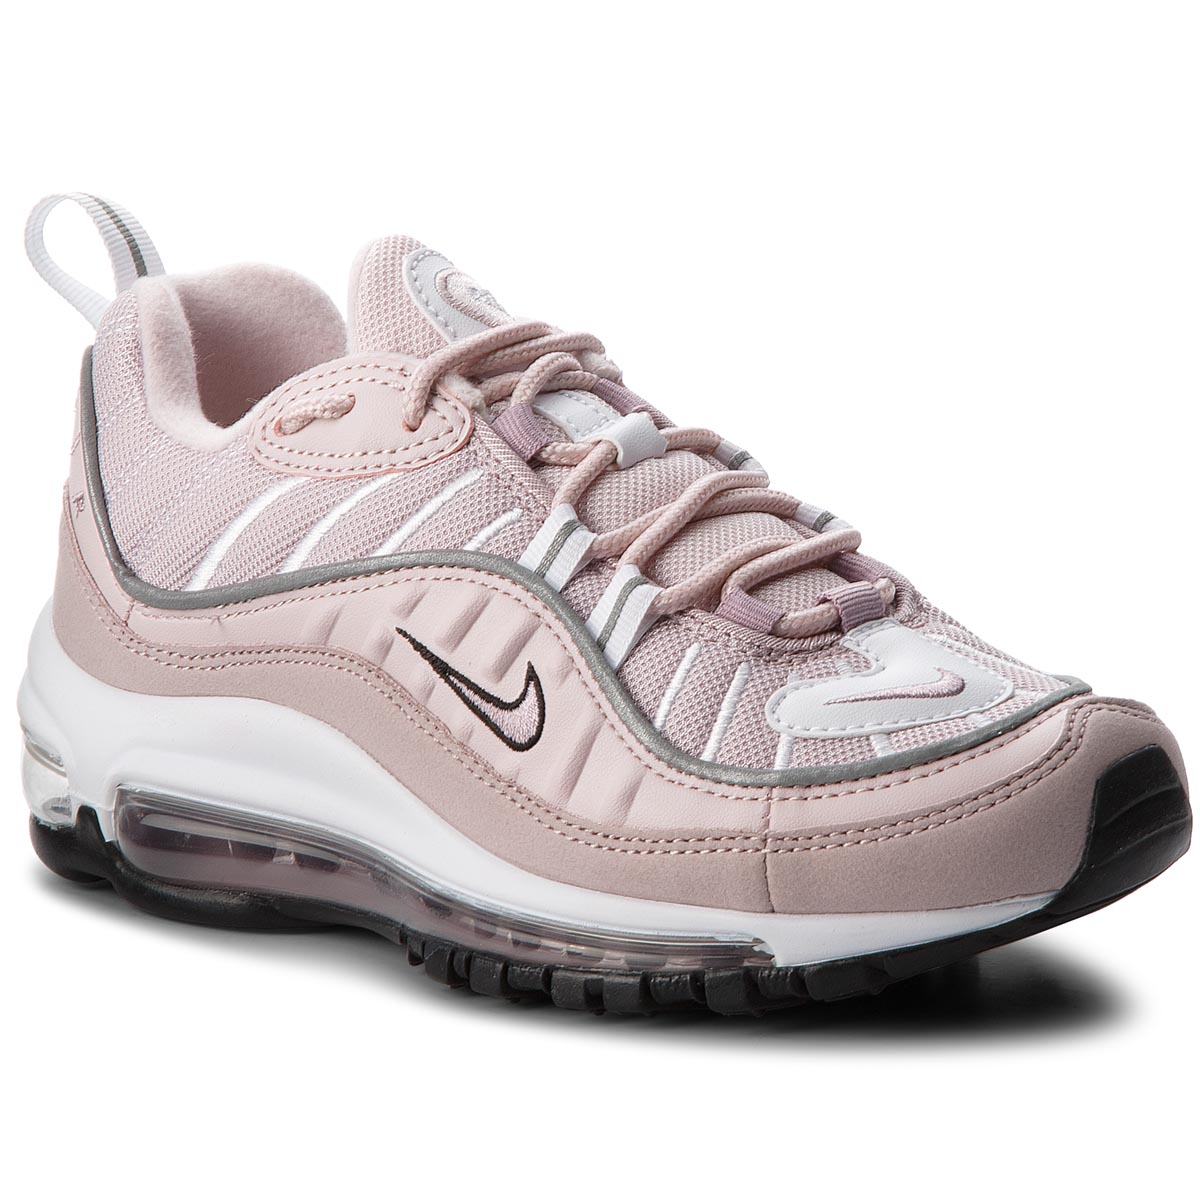 Buty NIKE - Air Max 98 AH6799 600 Barely Rose/Elemental Rose